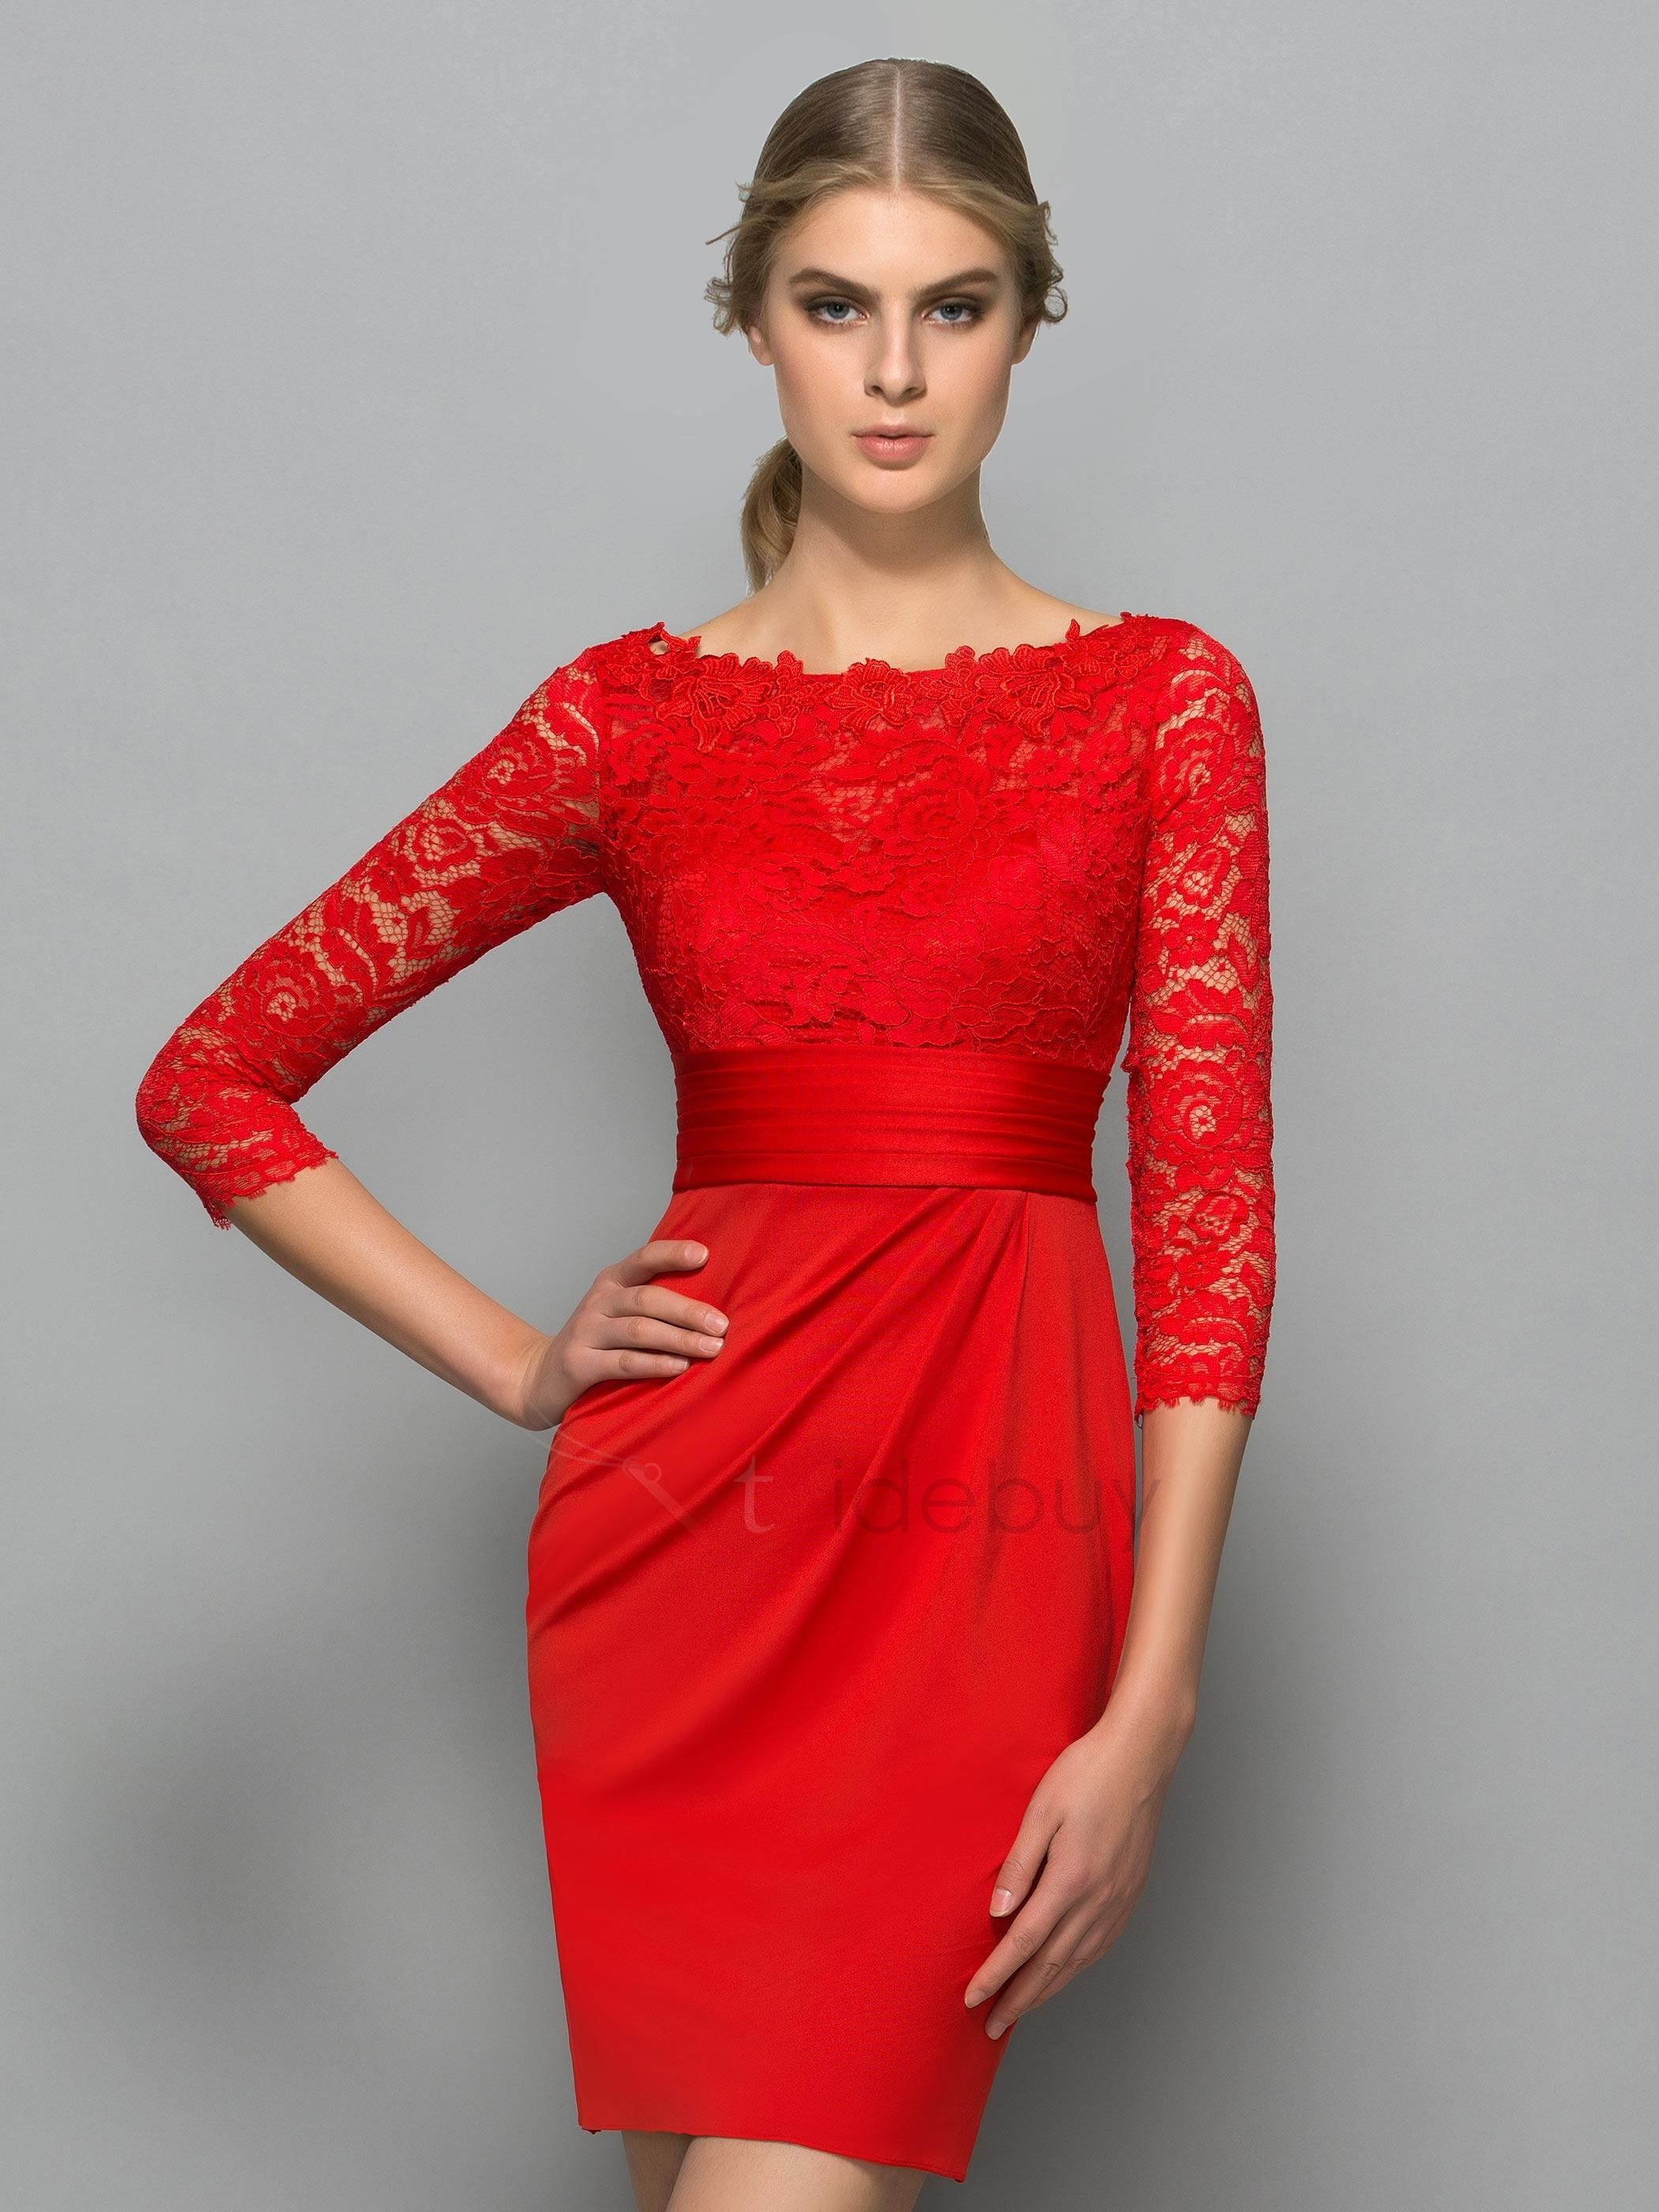 Classy Bateau Neck 3/4 Length Sleeve Red Lace Cocktail Dress | Lace ...